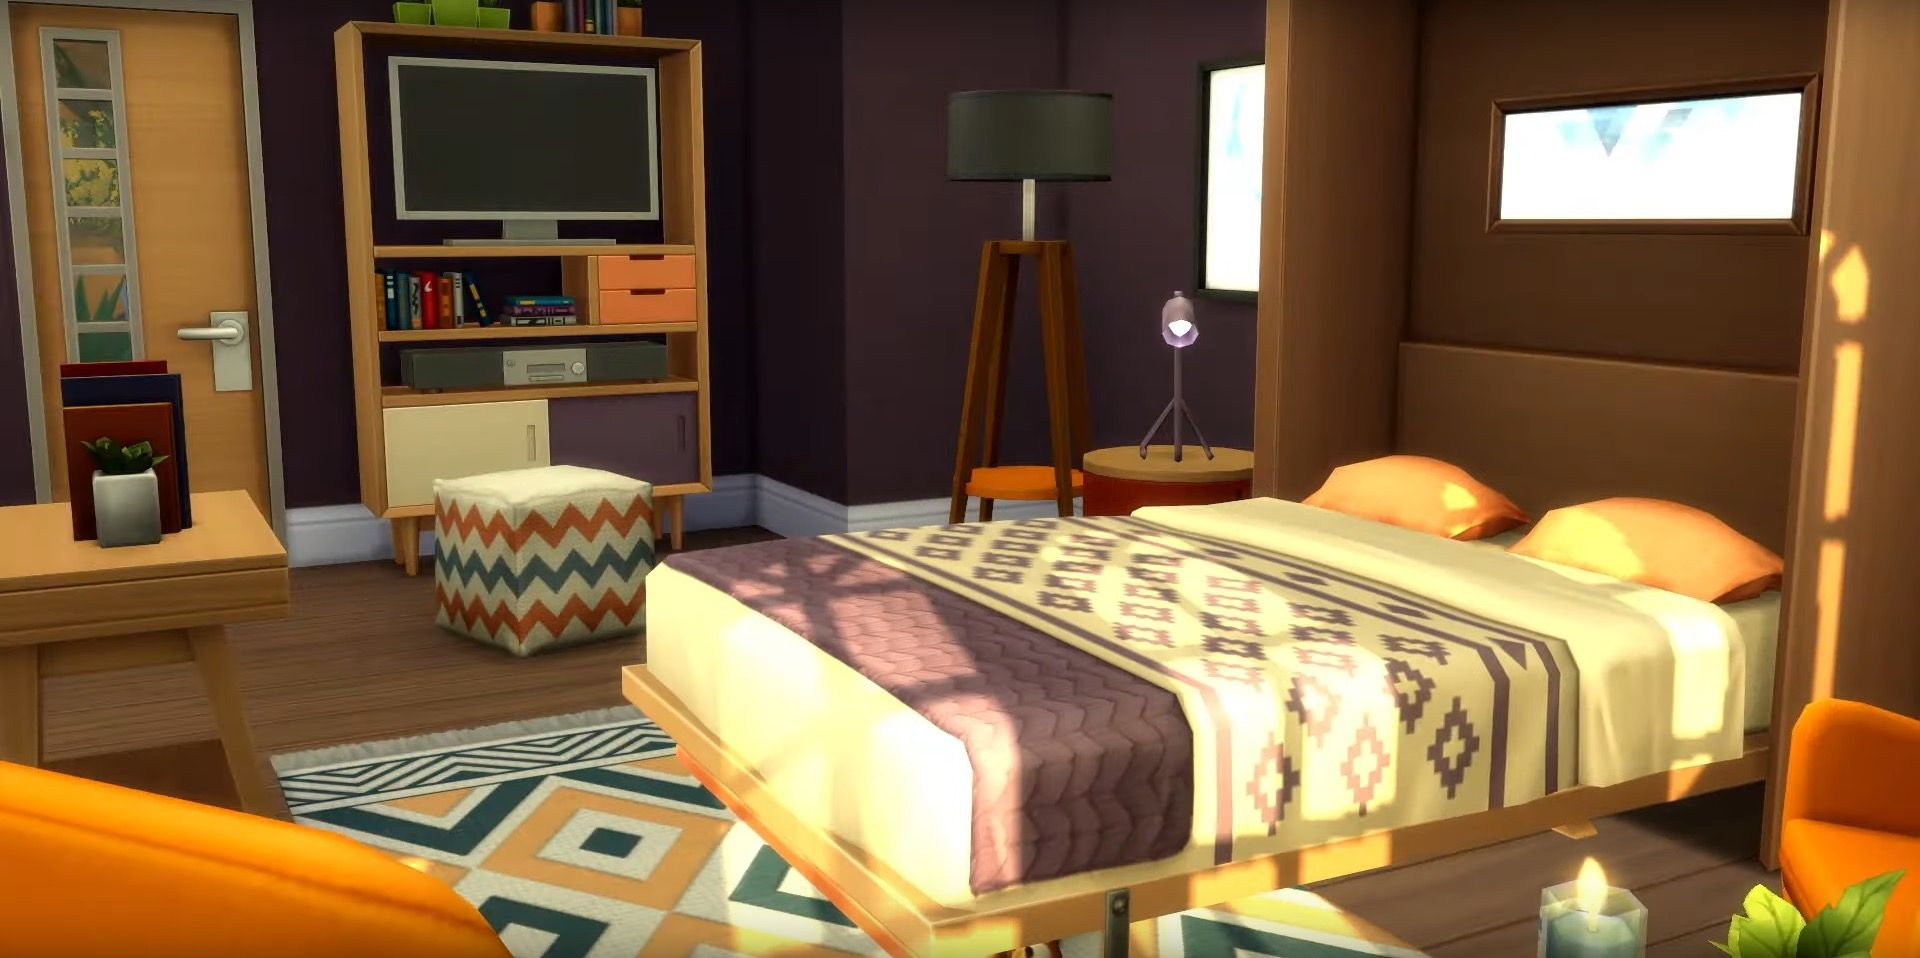 Sims 4 Announces Tiny Living Stuff Pack For Your Small Houses